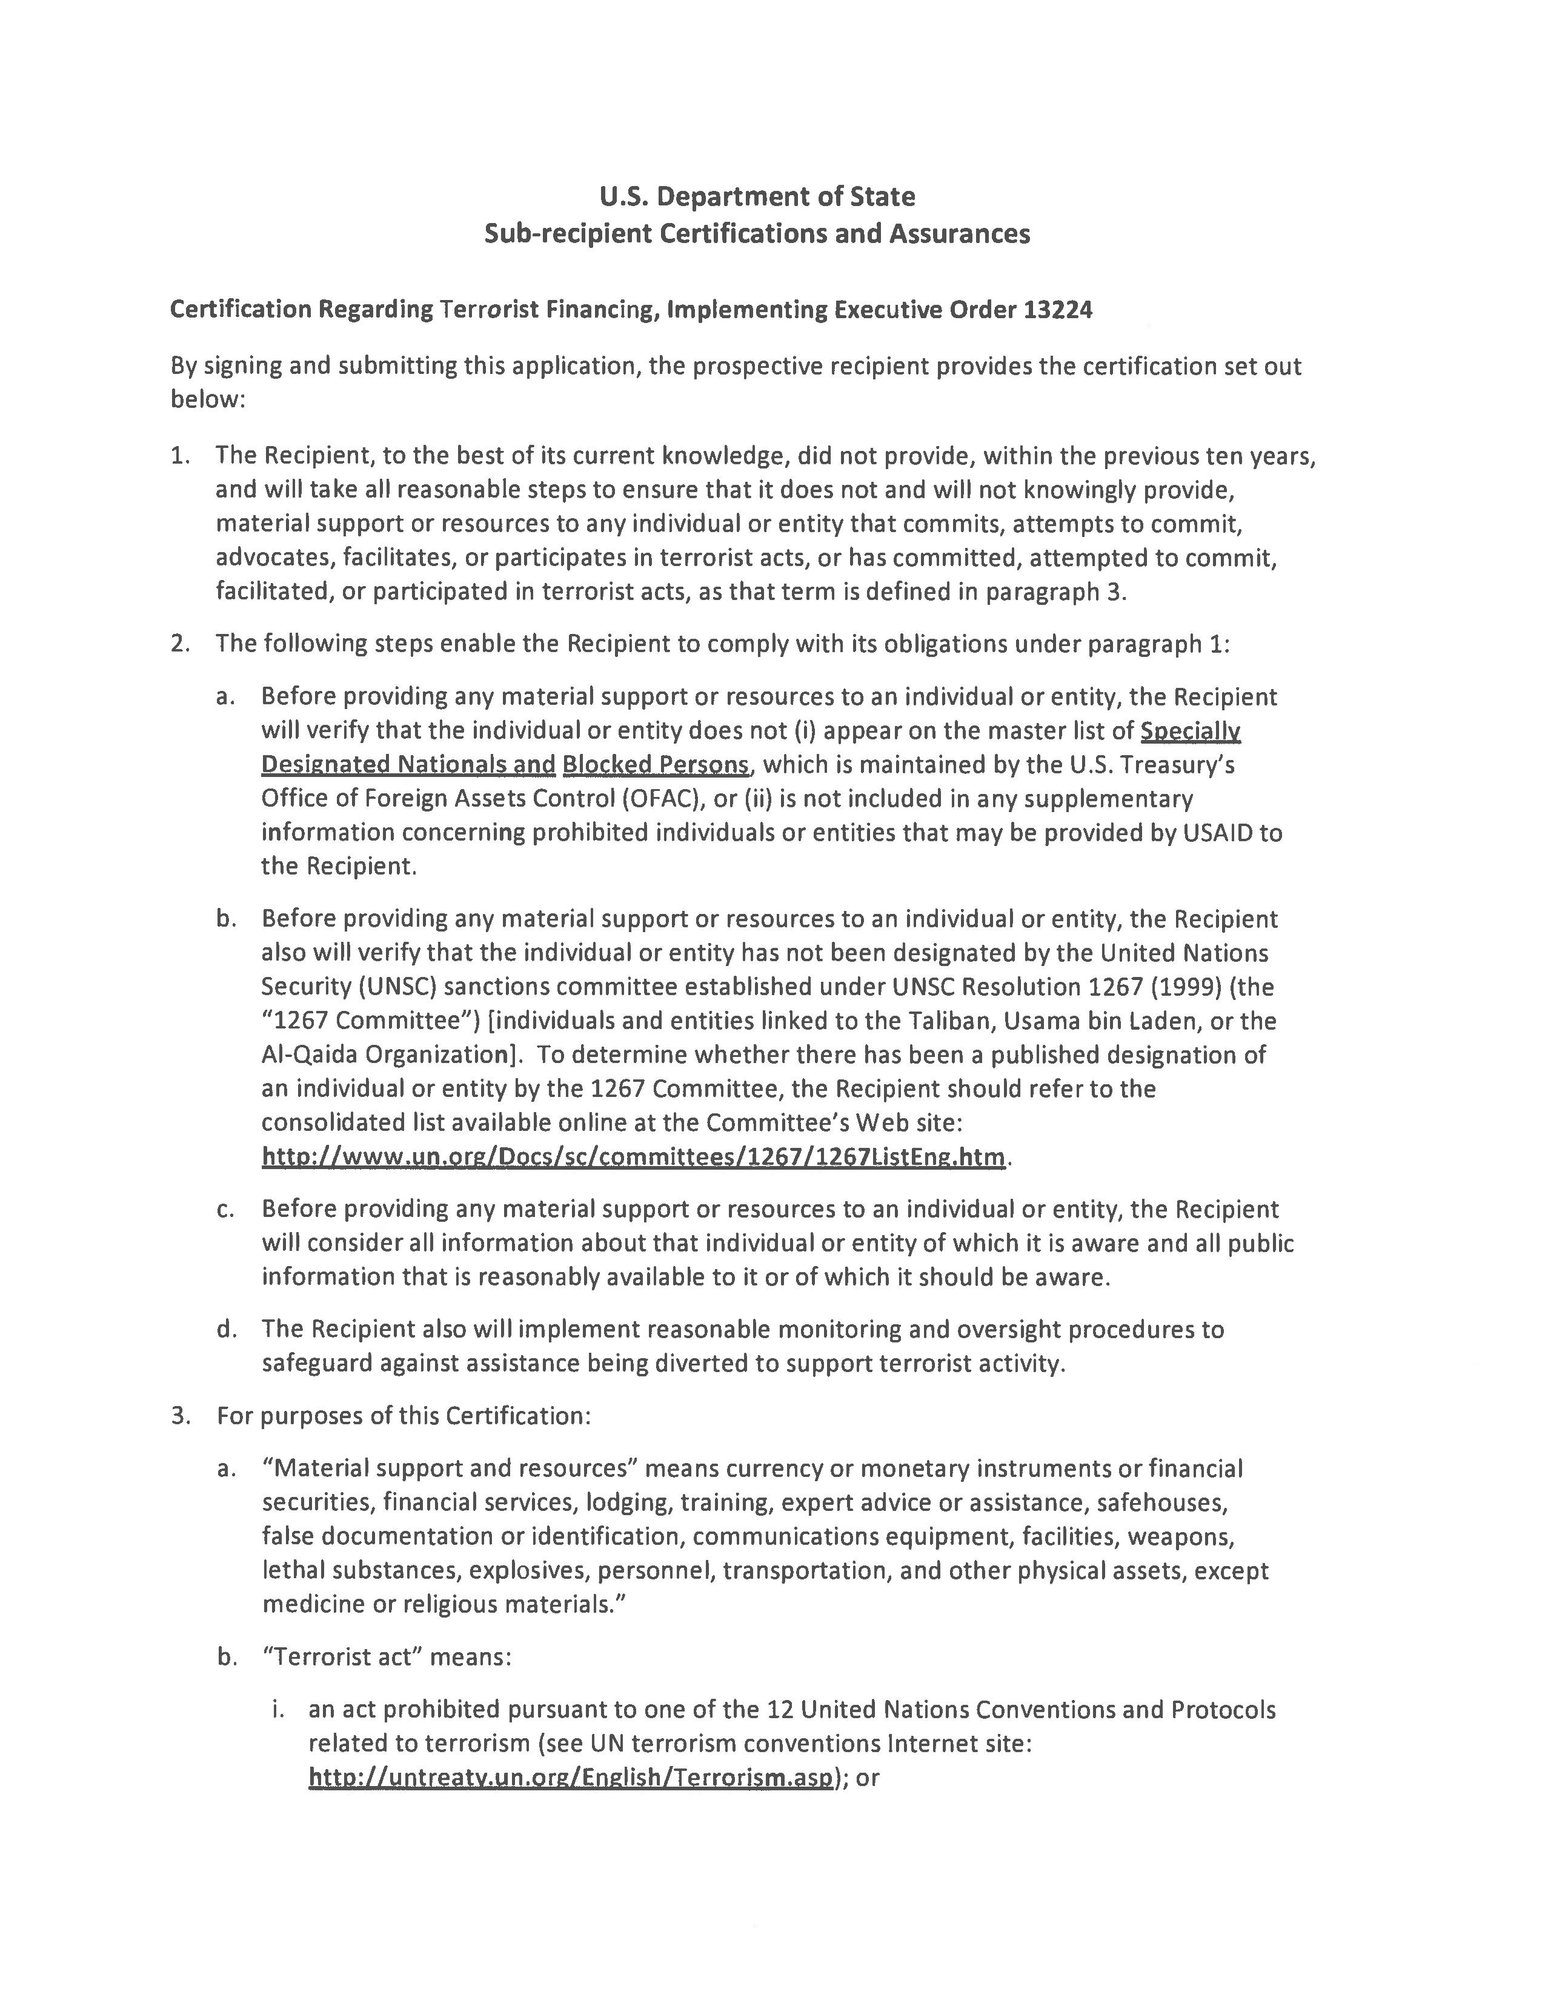 US contract for Ashrafi-page-007.jpg